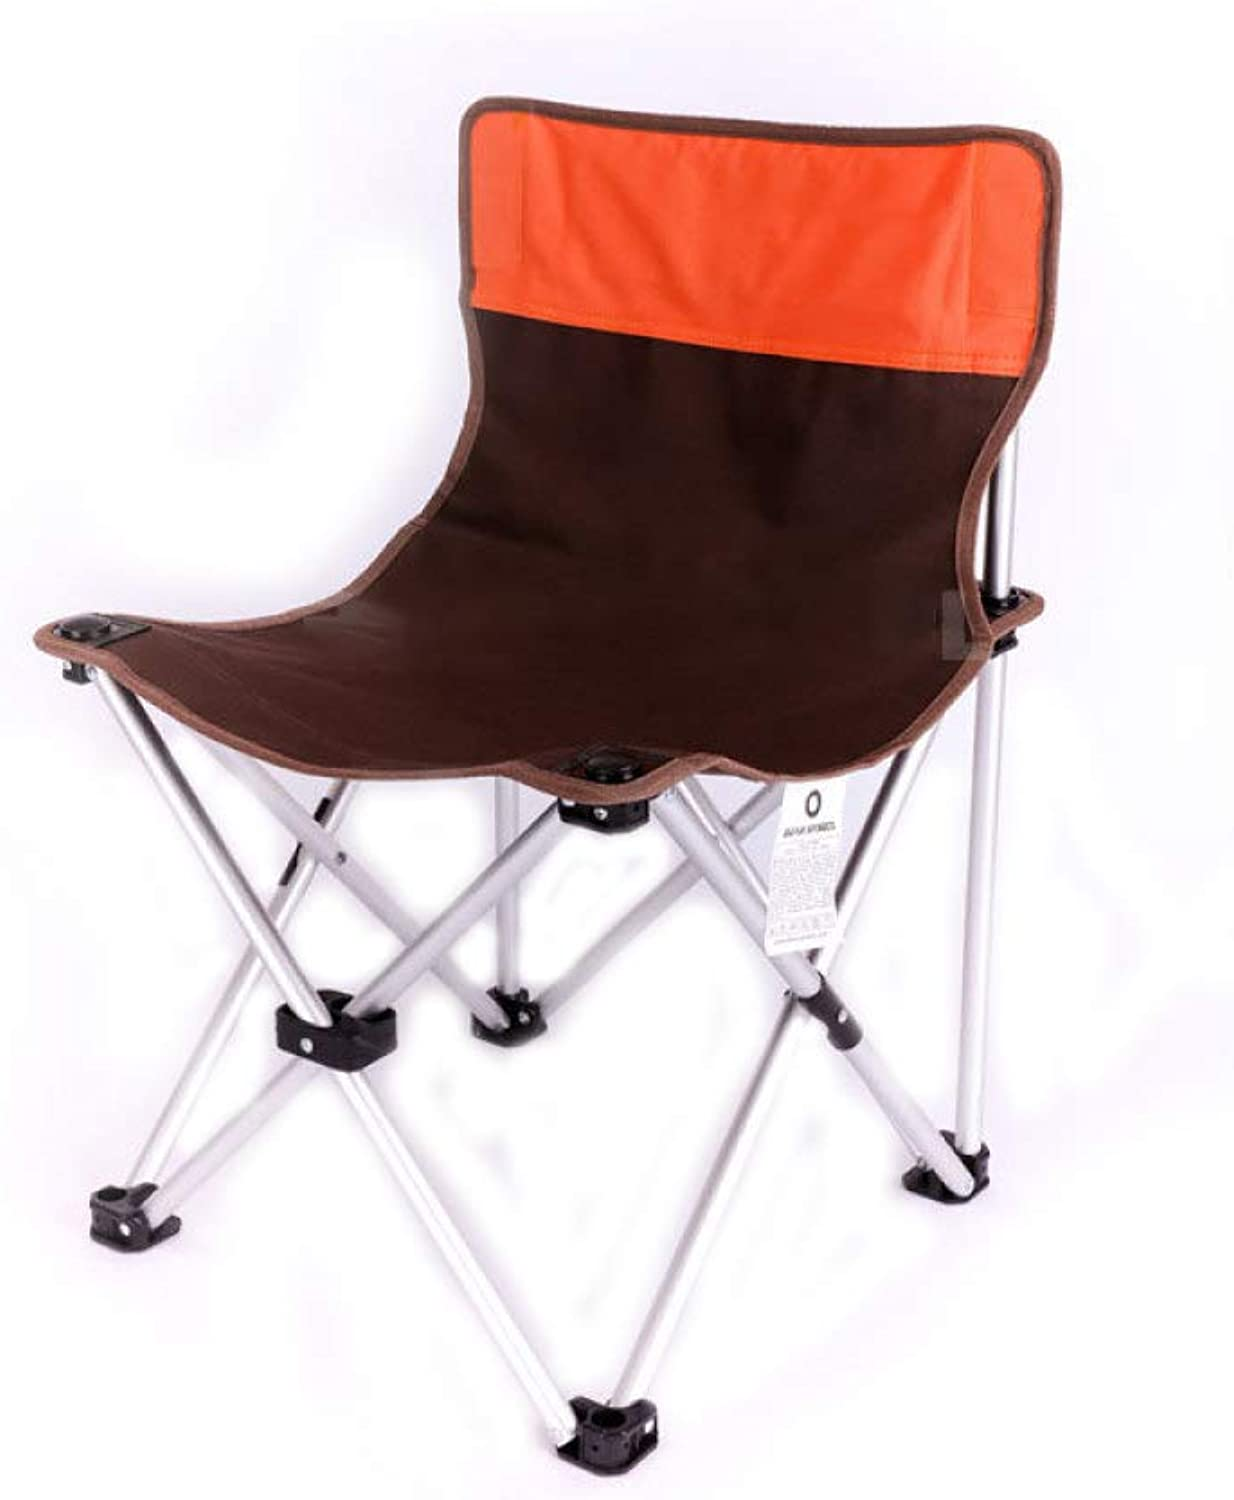 Outdoor Folding Chair Ultralight Portable Fishing Chair Sketch Chair Camping Portable Chair